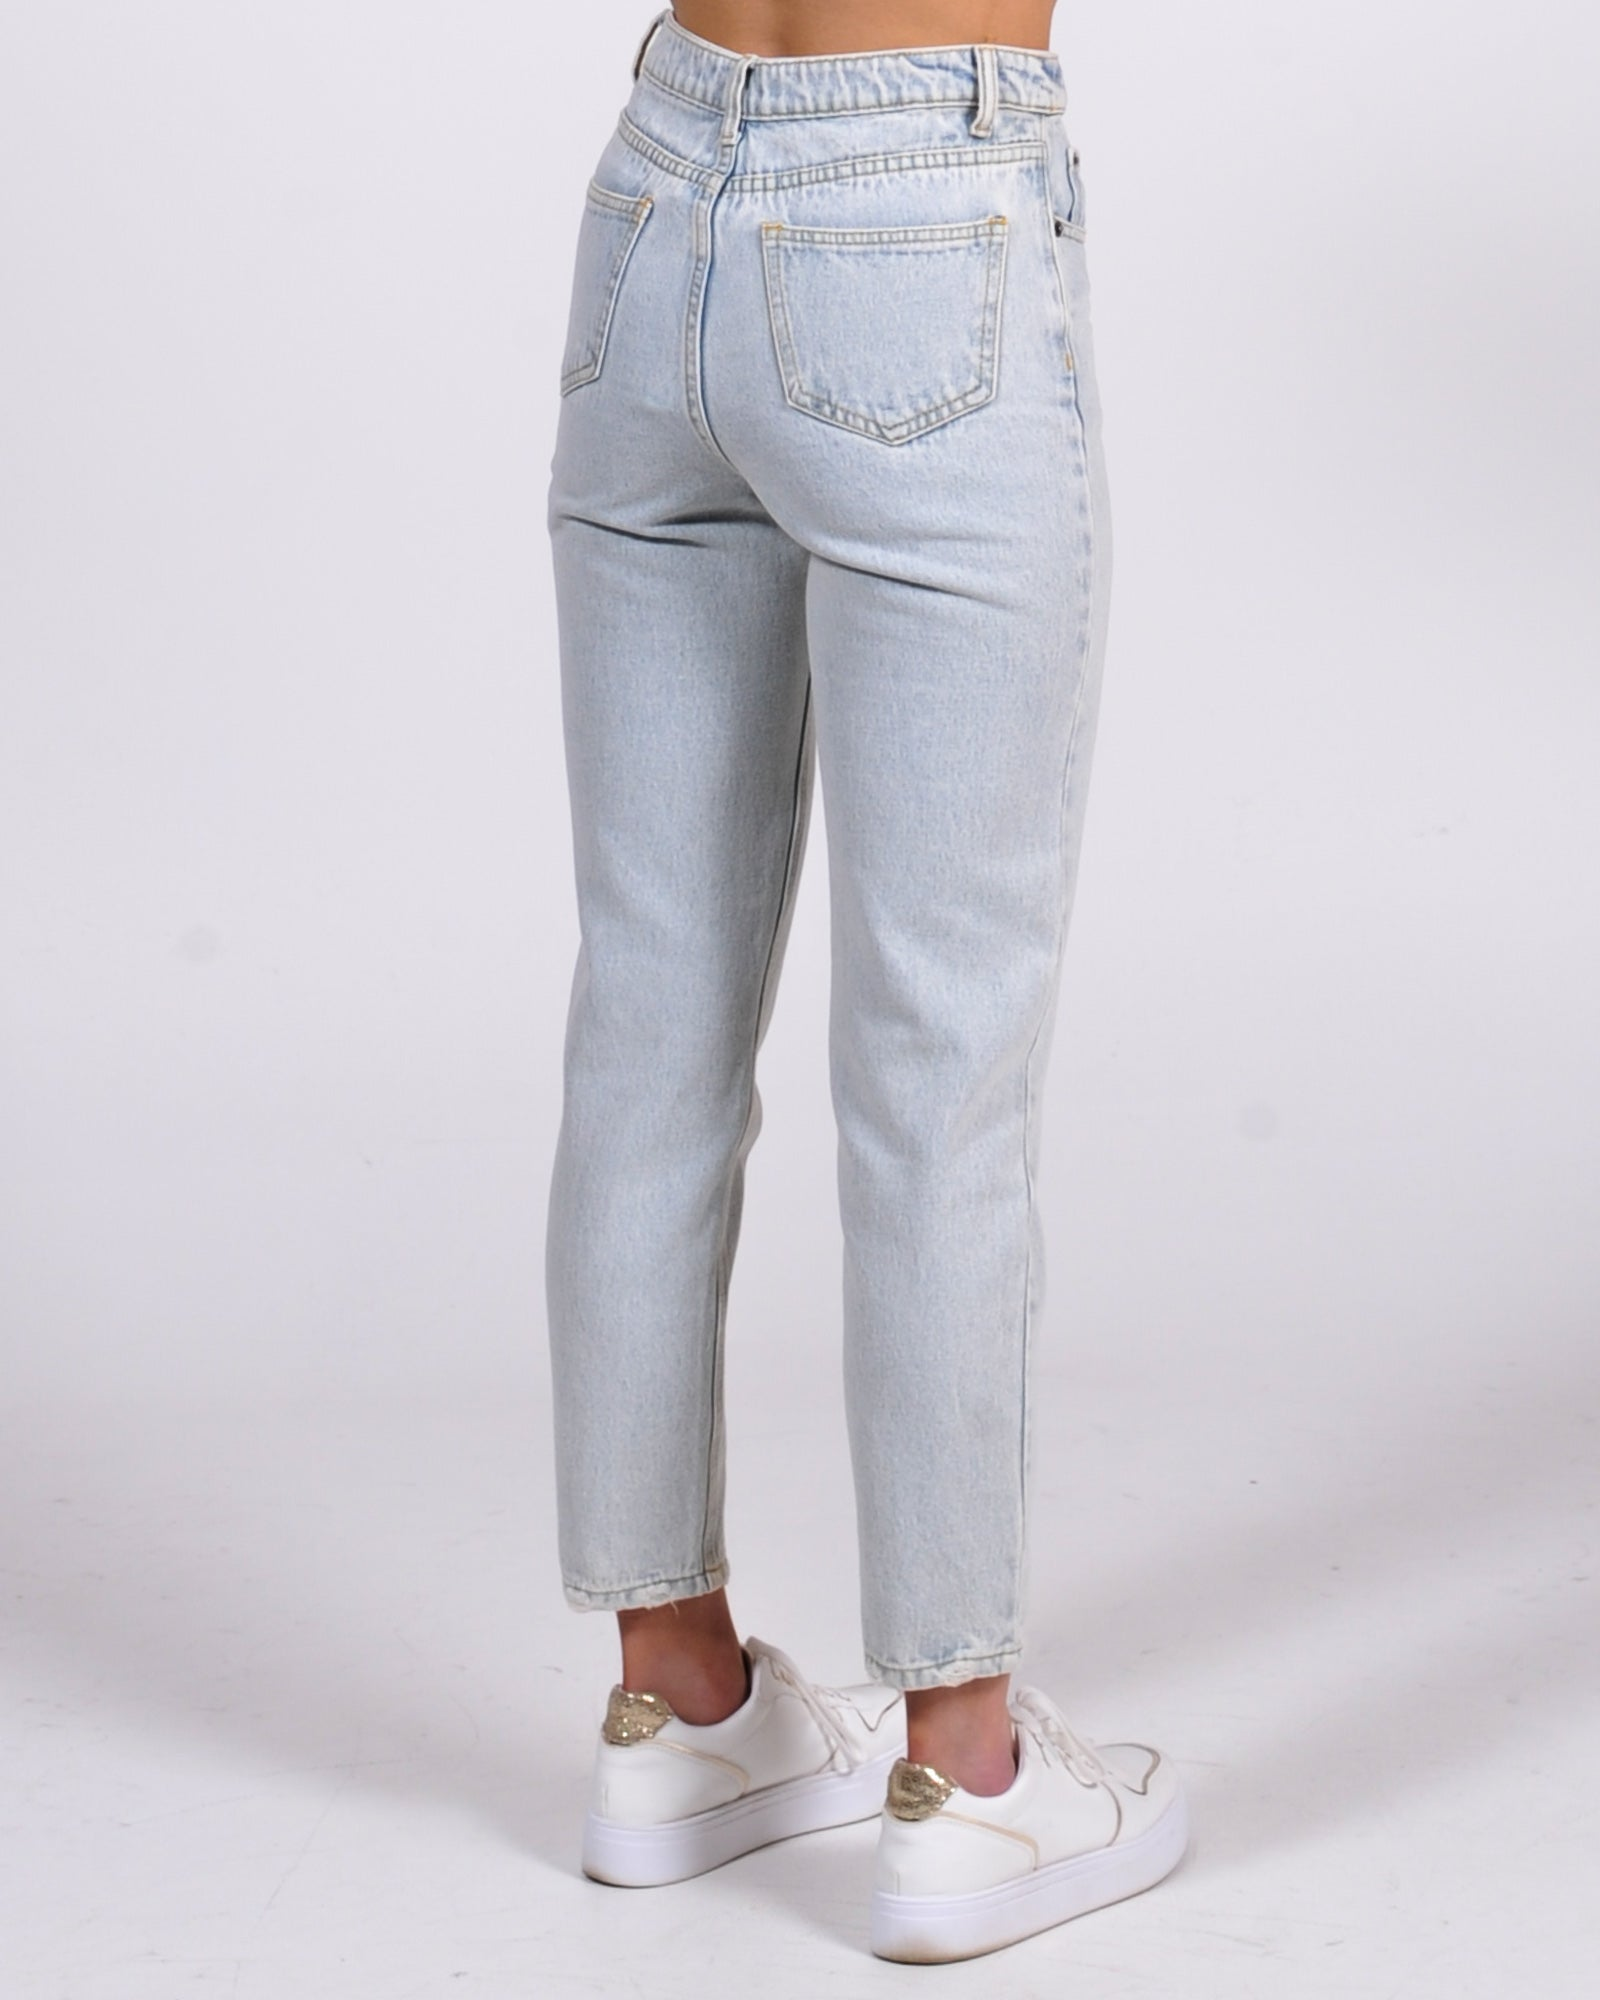 Nineties Mom Jean - Washed Blue